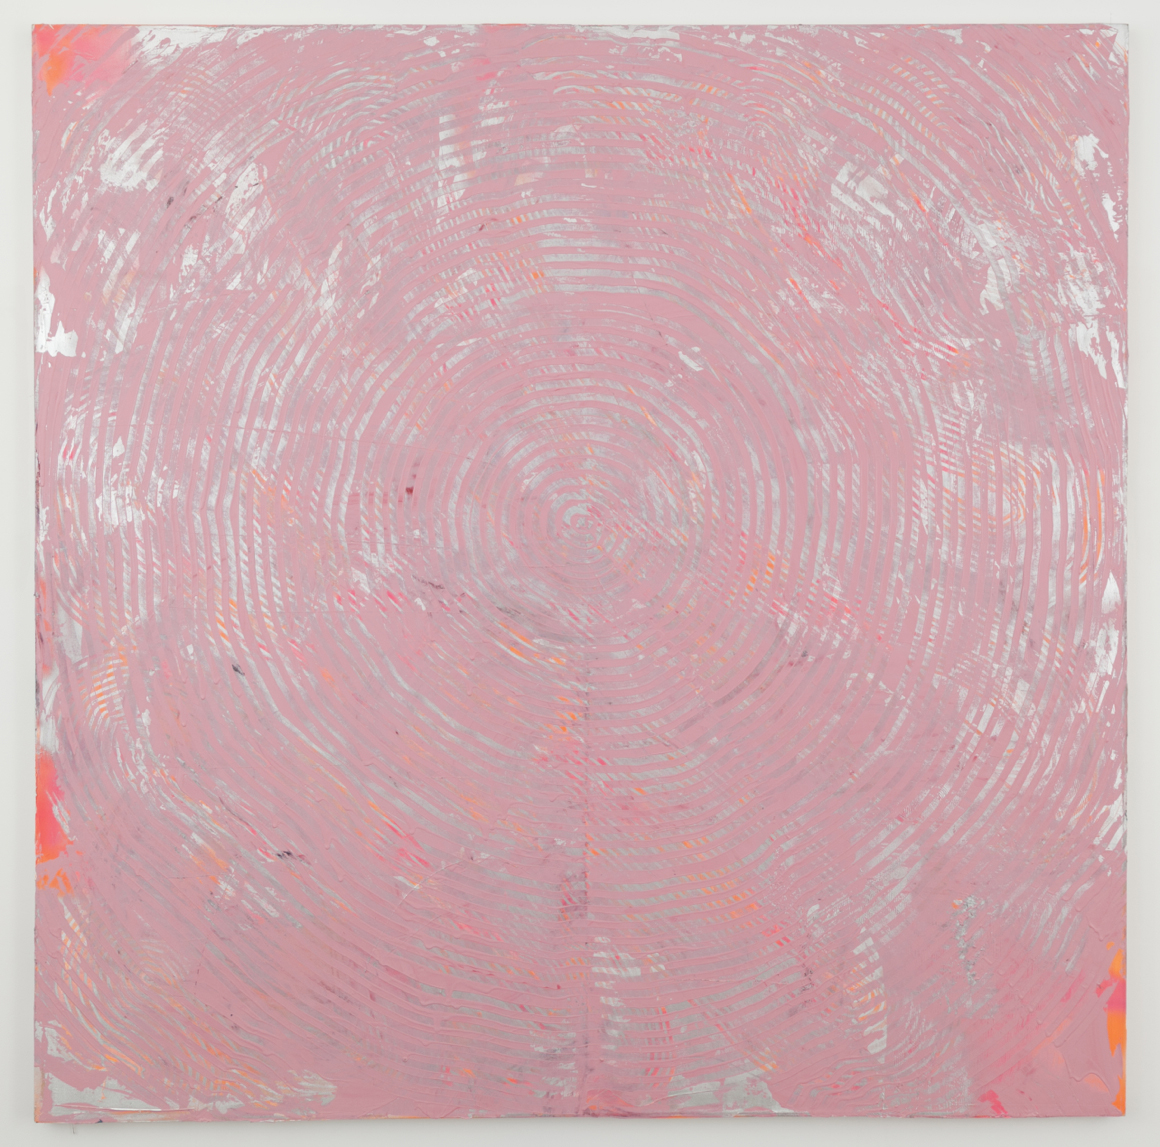 "<p><span class=""name"">Adam Bateman</span><br><em>Pink and Silver</em><span class='media'>acrylic and spray paint on canvas</span>72 x 72 in  (182.9 x 182.9 cm)<br>2014<br><a class='inquire' href='mailto:info@gildargallery.com?subject=Artwork Inquiry ABAT0006&body=I am interested in finding out more about Pink and Silver by Adam Bateman'>Inquire</a></p>"